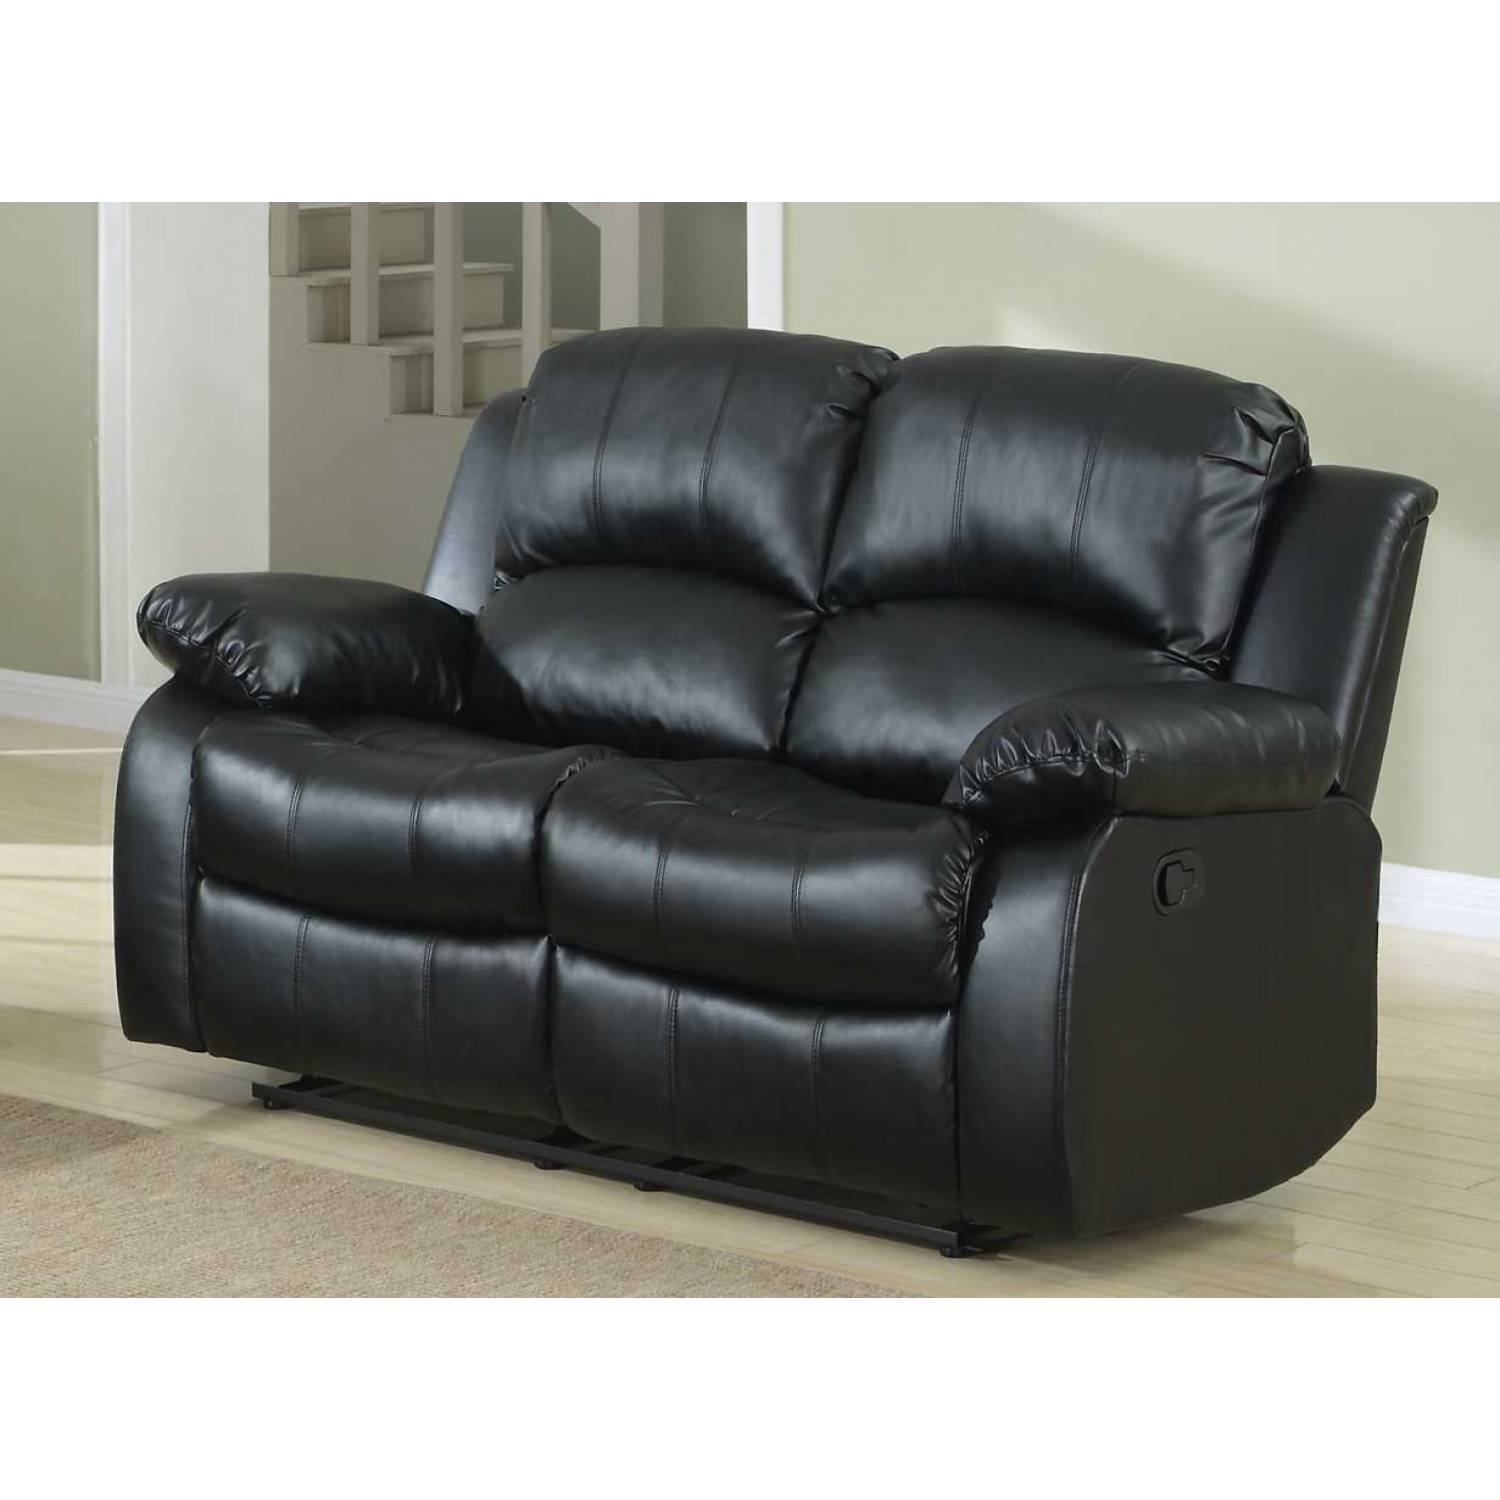 Cranley Double Reclining Love Seat Black Bonded Leather